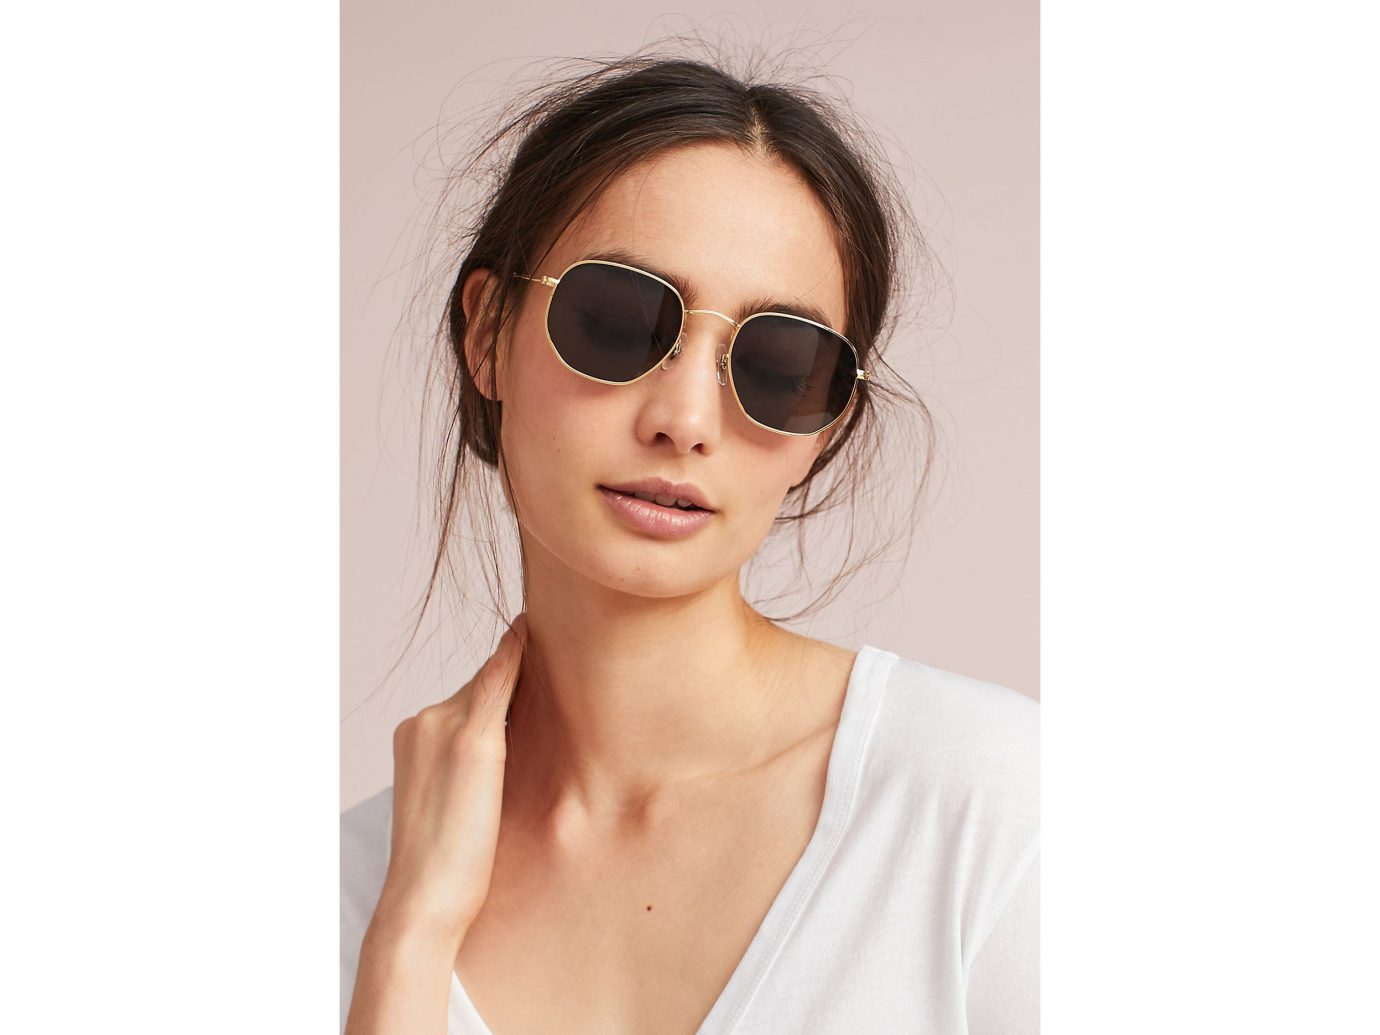 Spring Travel Style + Design Summer Travel Travel Lifestyle Travel Shop person eyewear sunglasses vision care woman wearing fashion model posing glasses white brown hair beige health & beauty spectacles beautiful pretty goggles